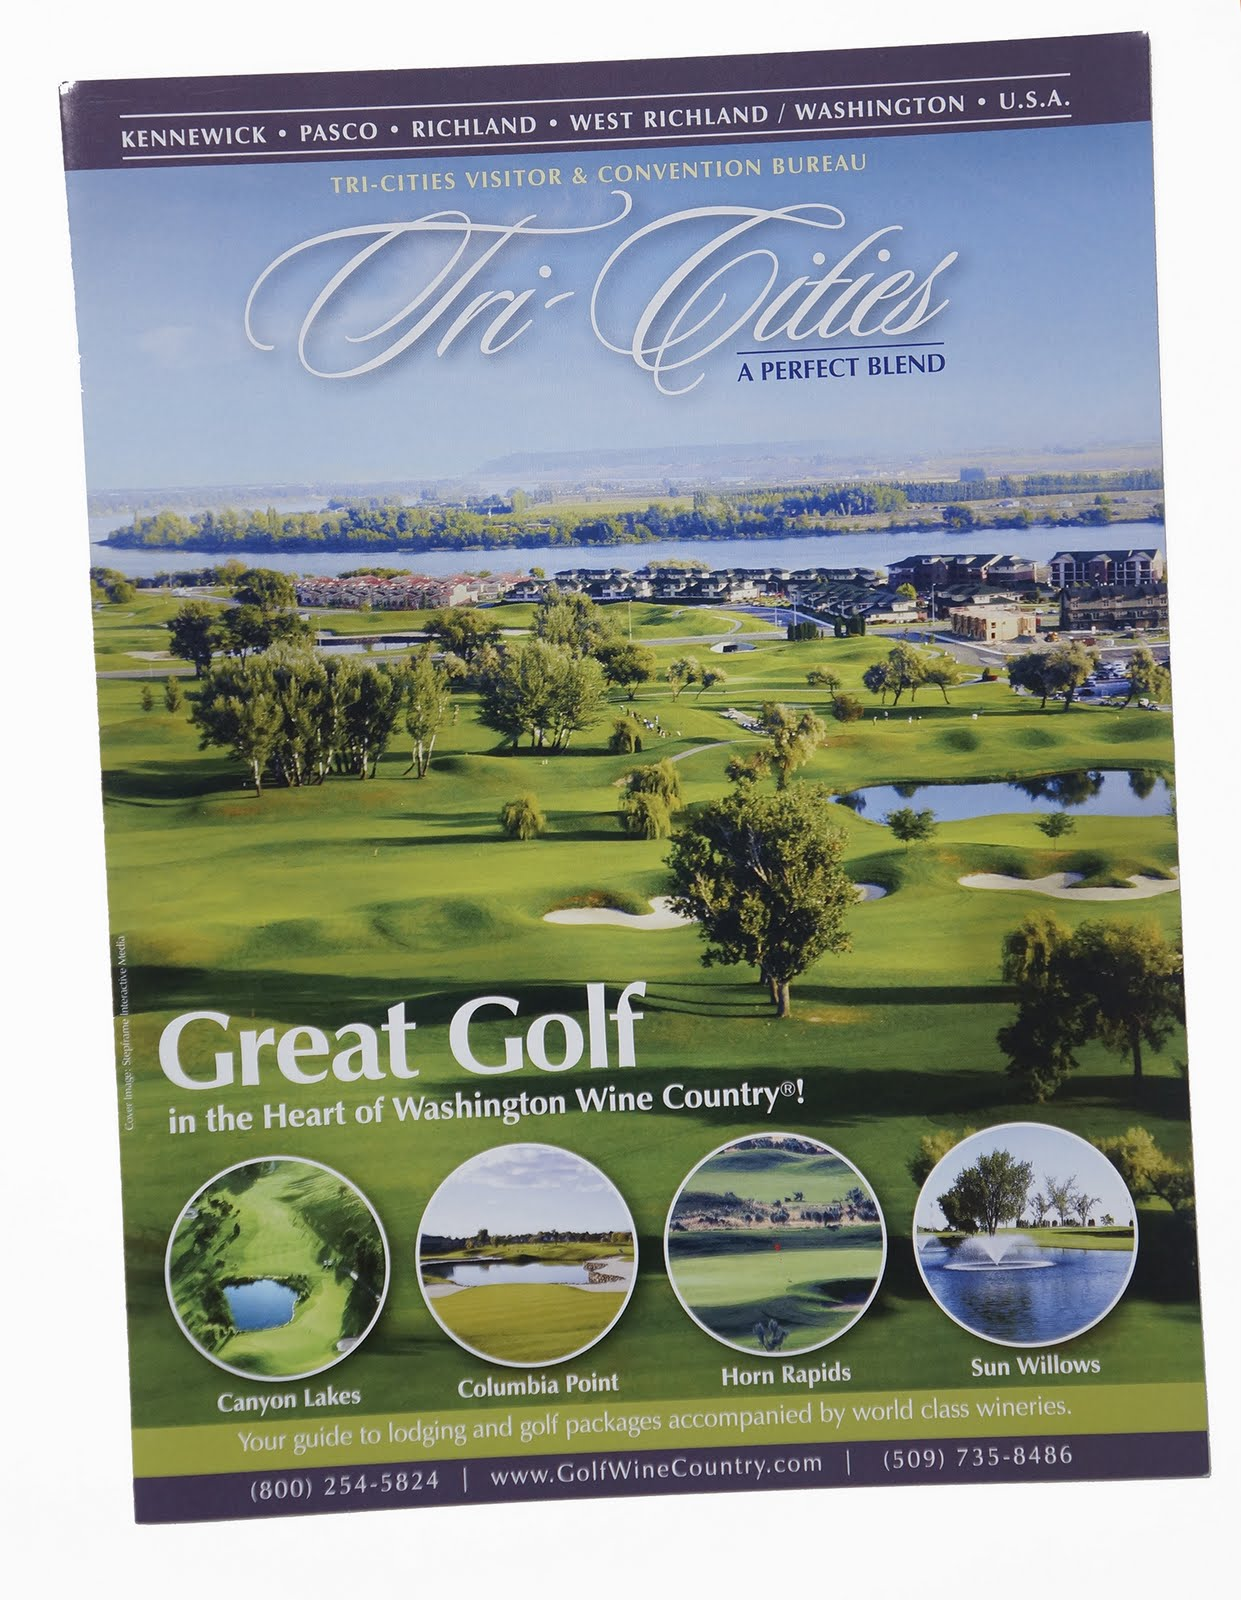 A three-fold insert for a golfing magazine; also used as a standalone brochure.